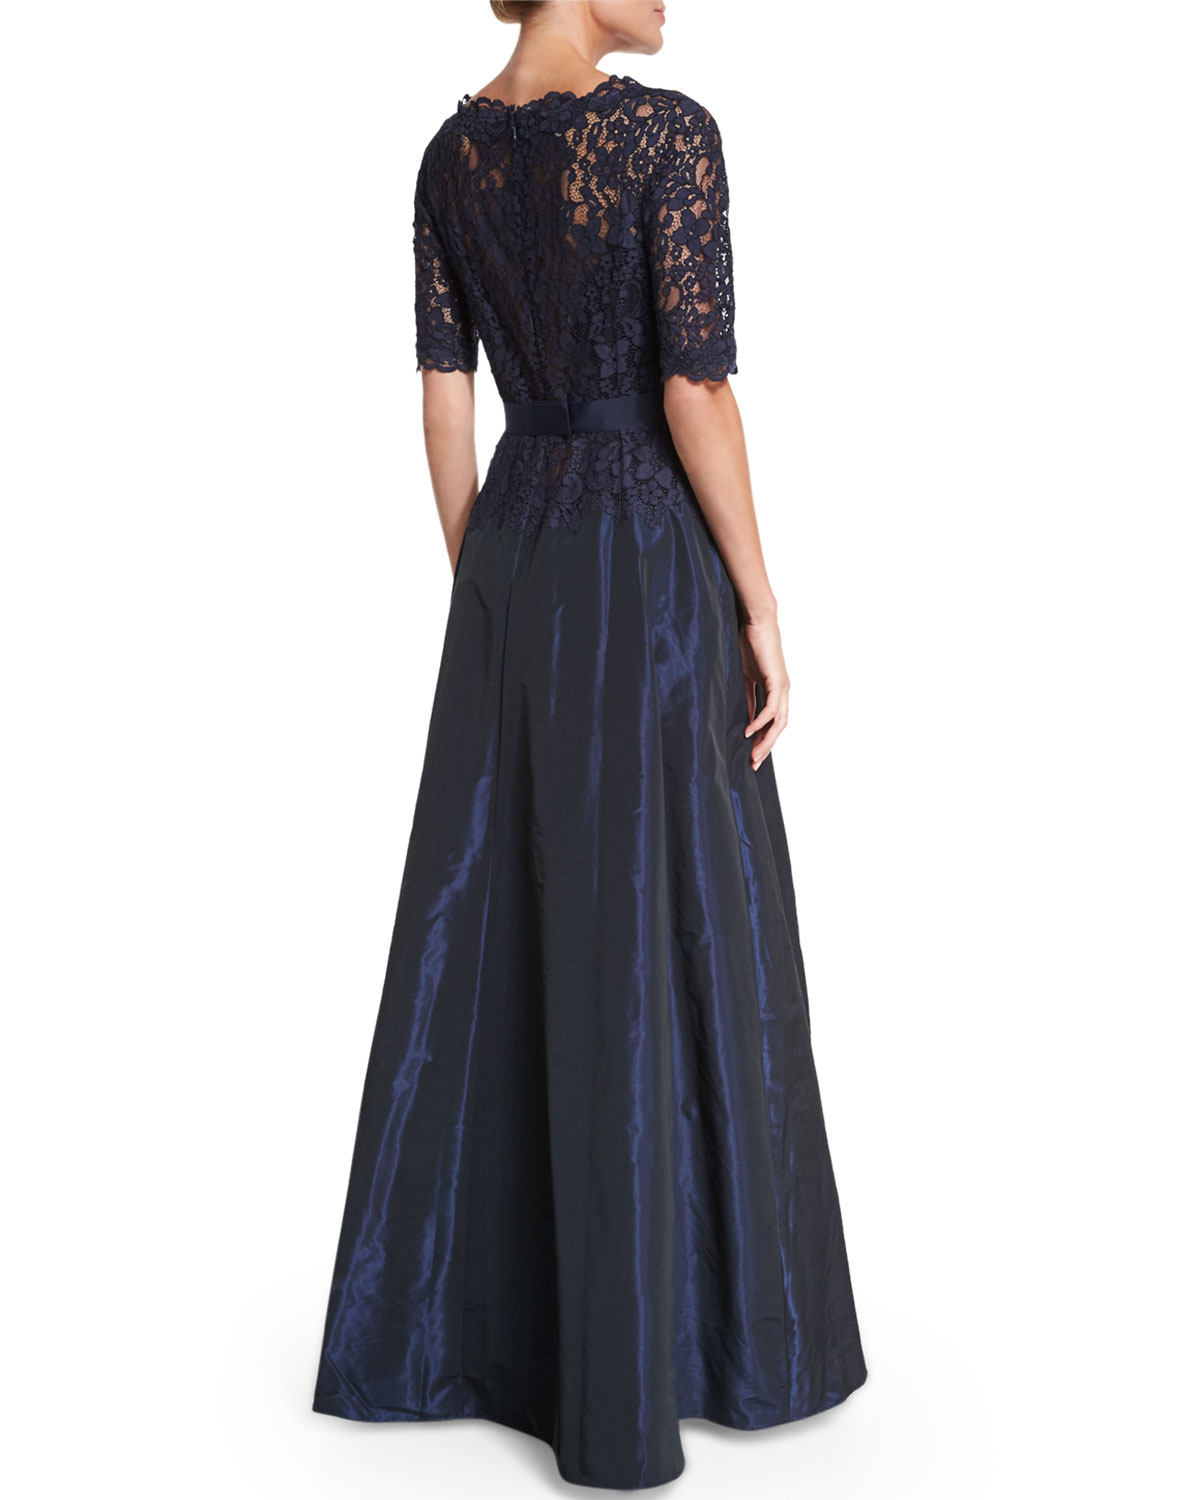 Teri jon Scalloped Lace Gown in Blue